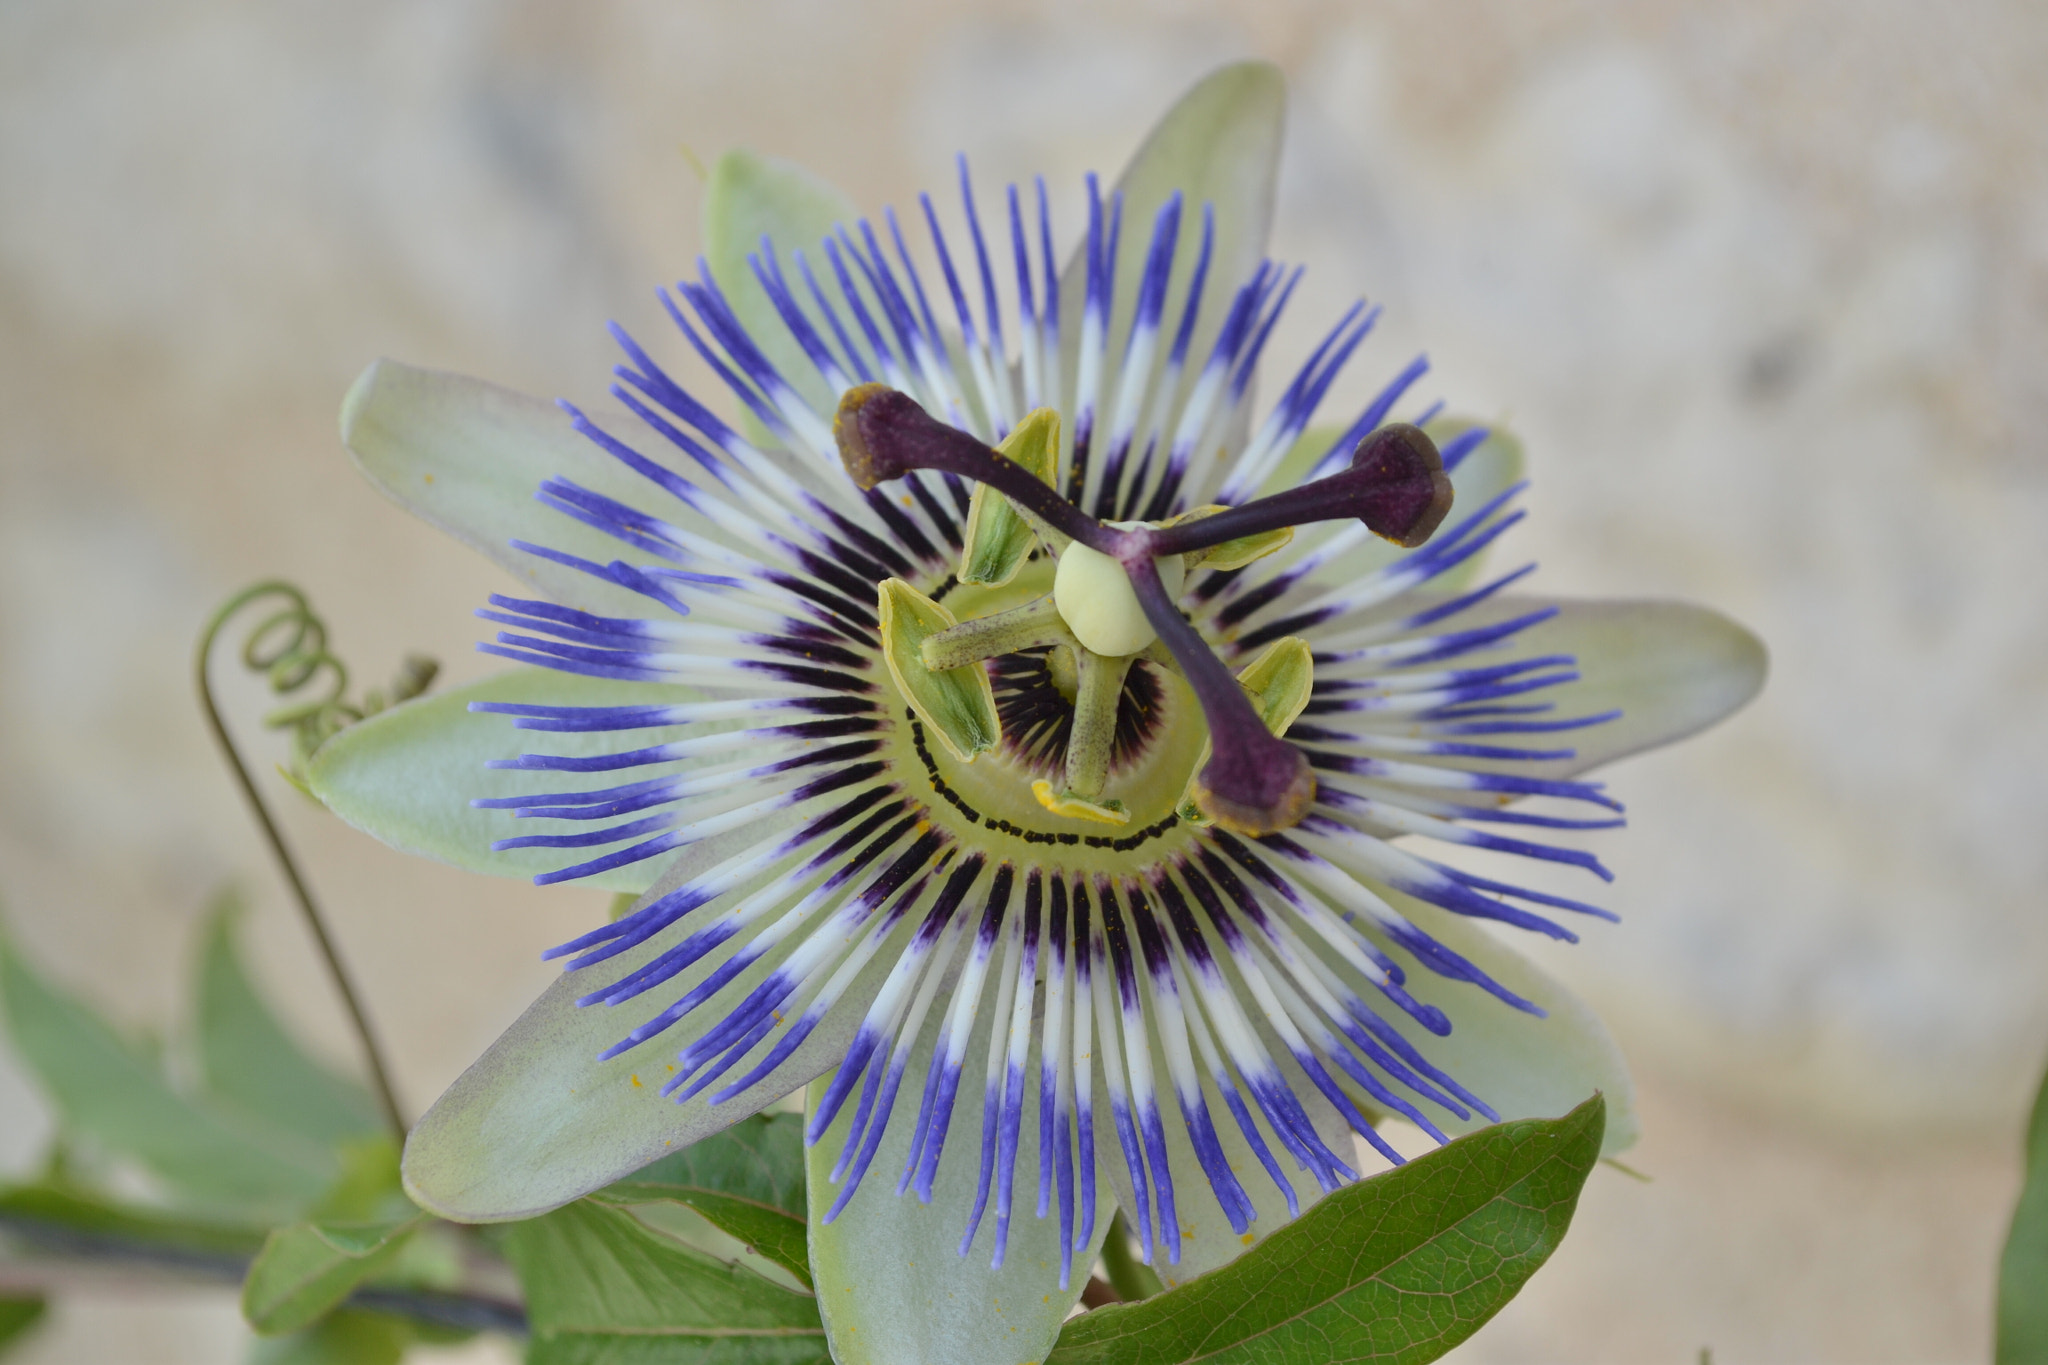 Photograph Passionflower by Heather Aplin on 500px